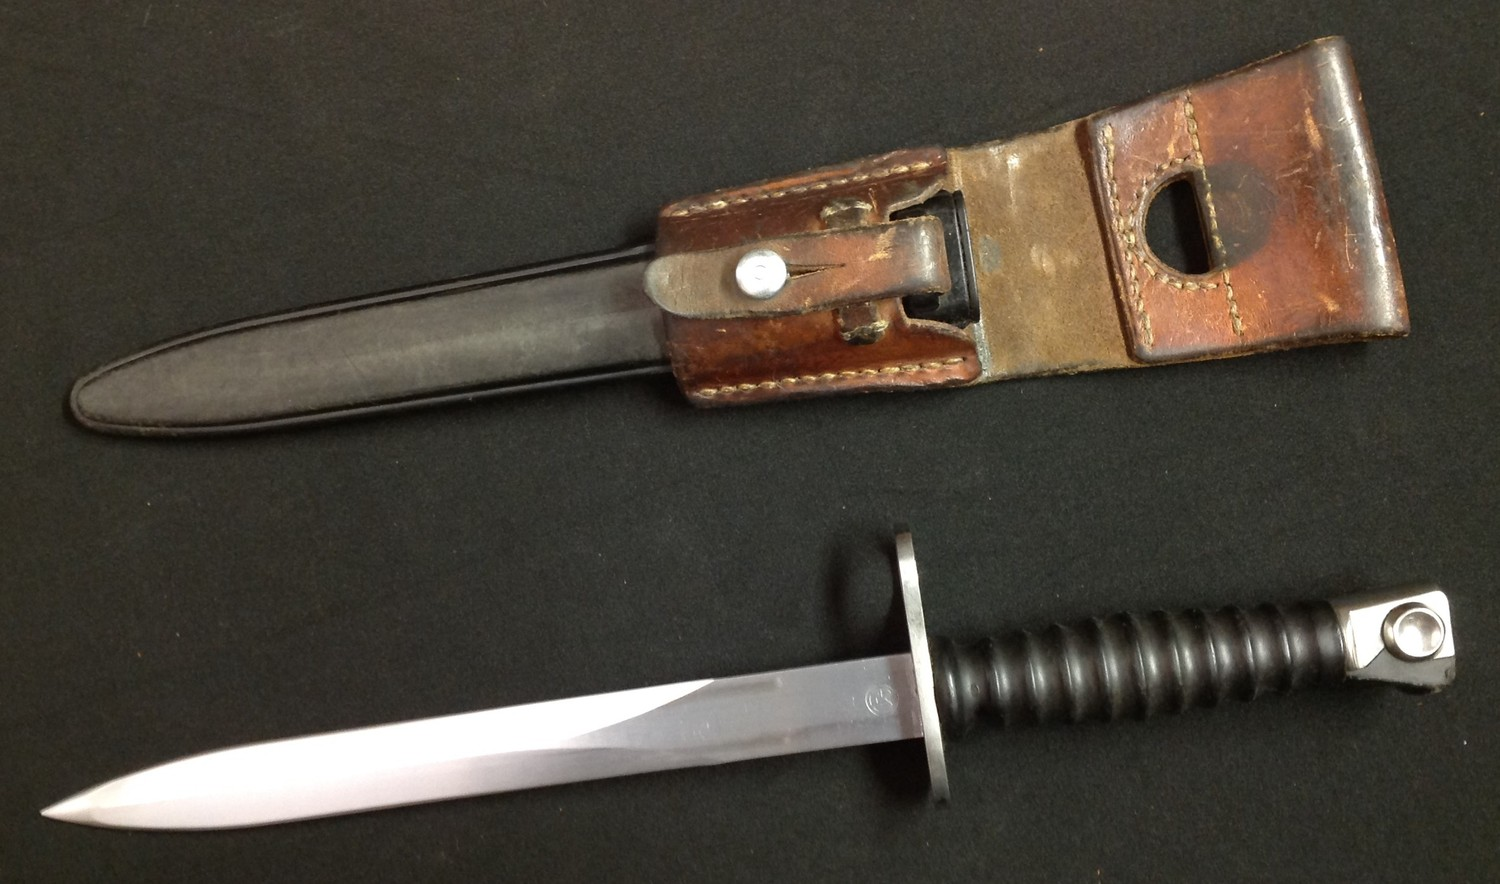 Swiss Model 1957 Bayonet with double edged blade 237mm in length, serial number W126770. Maker is